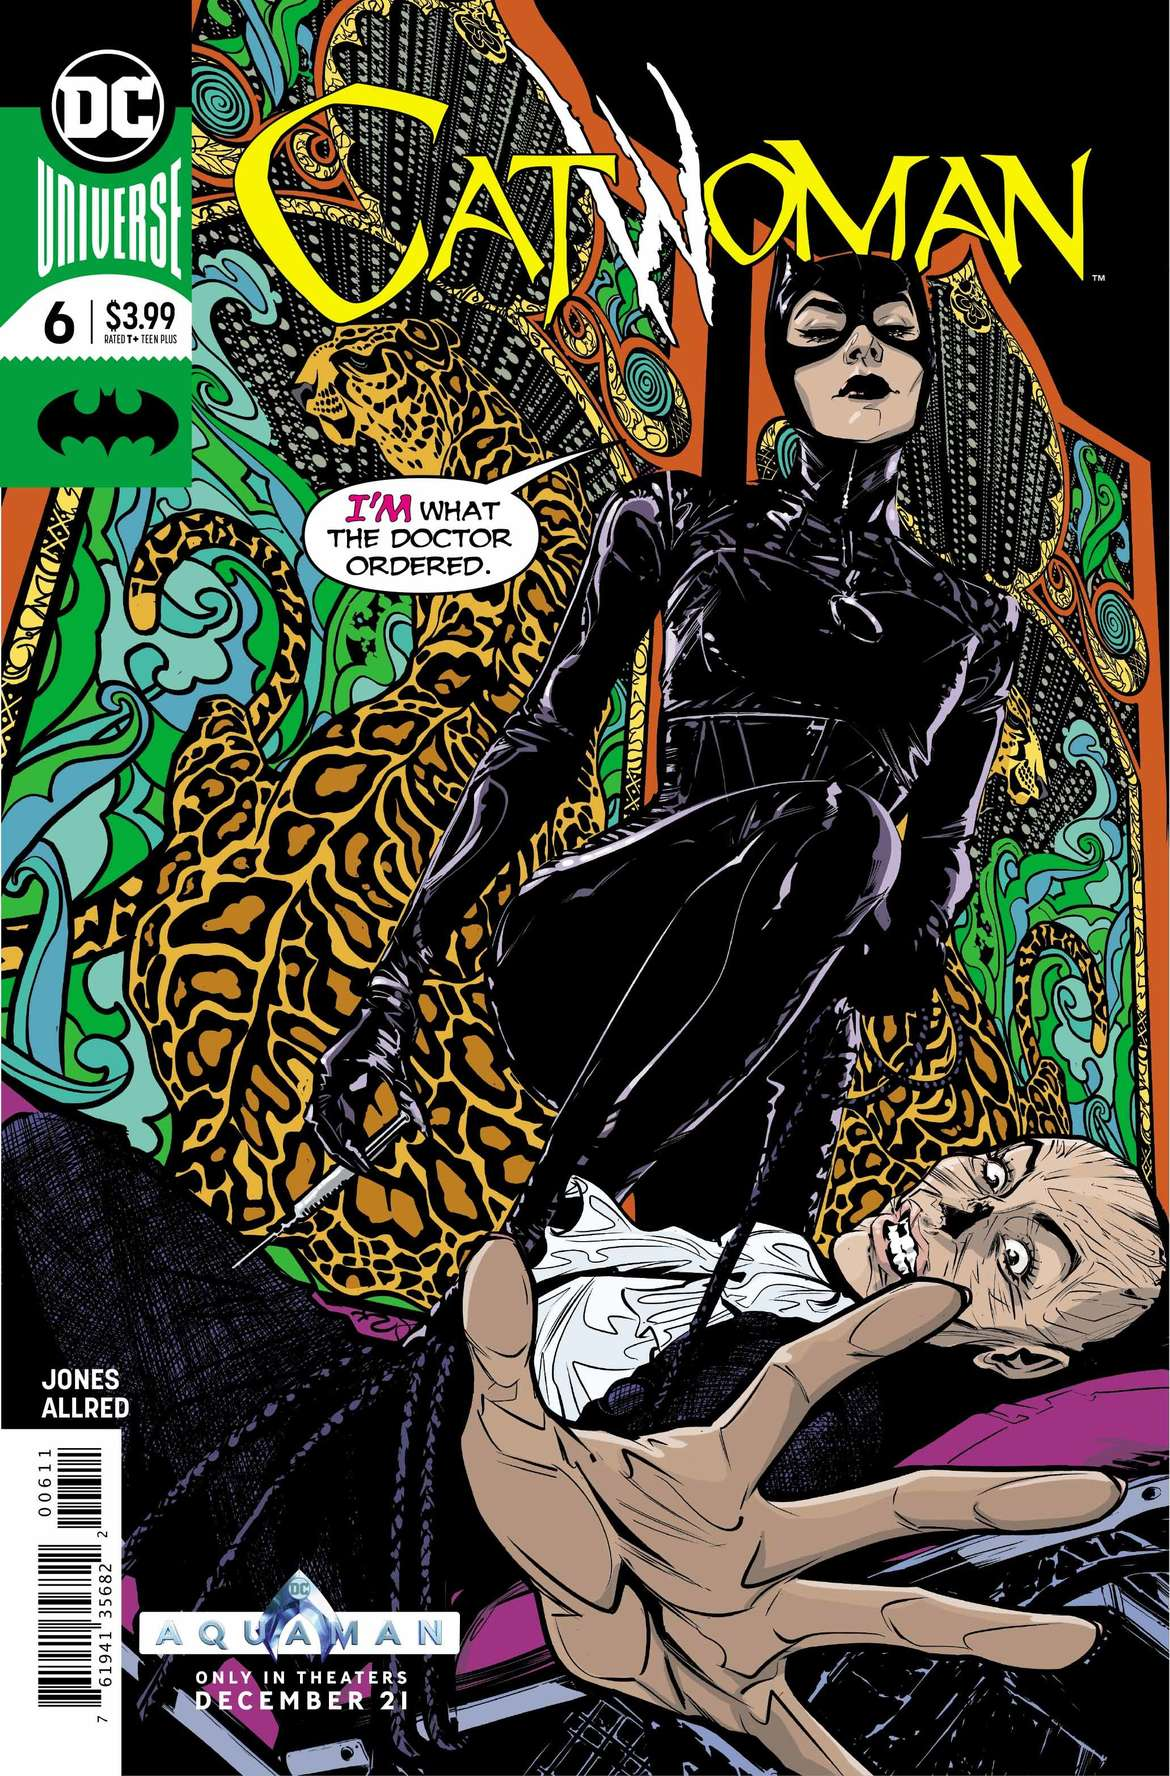 Catwoman #6 Cover Regular